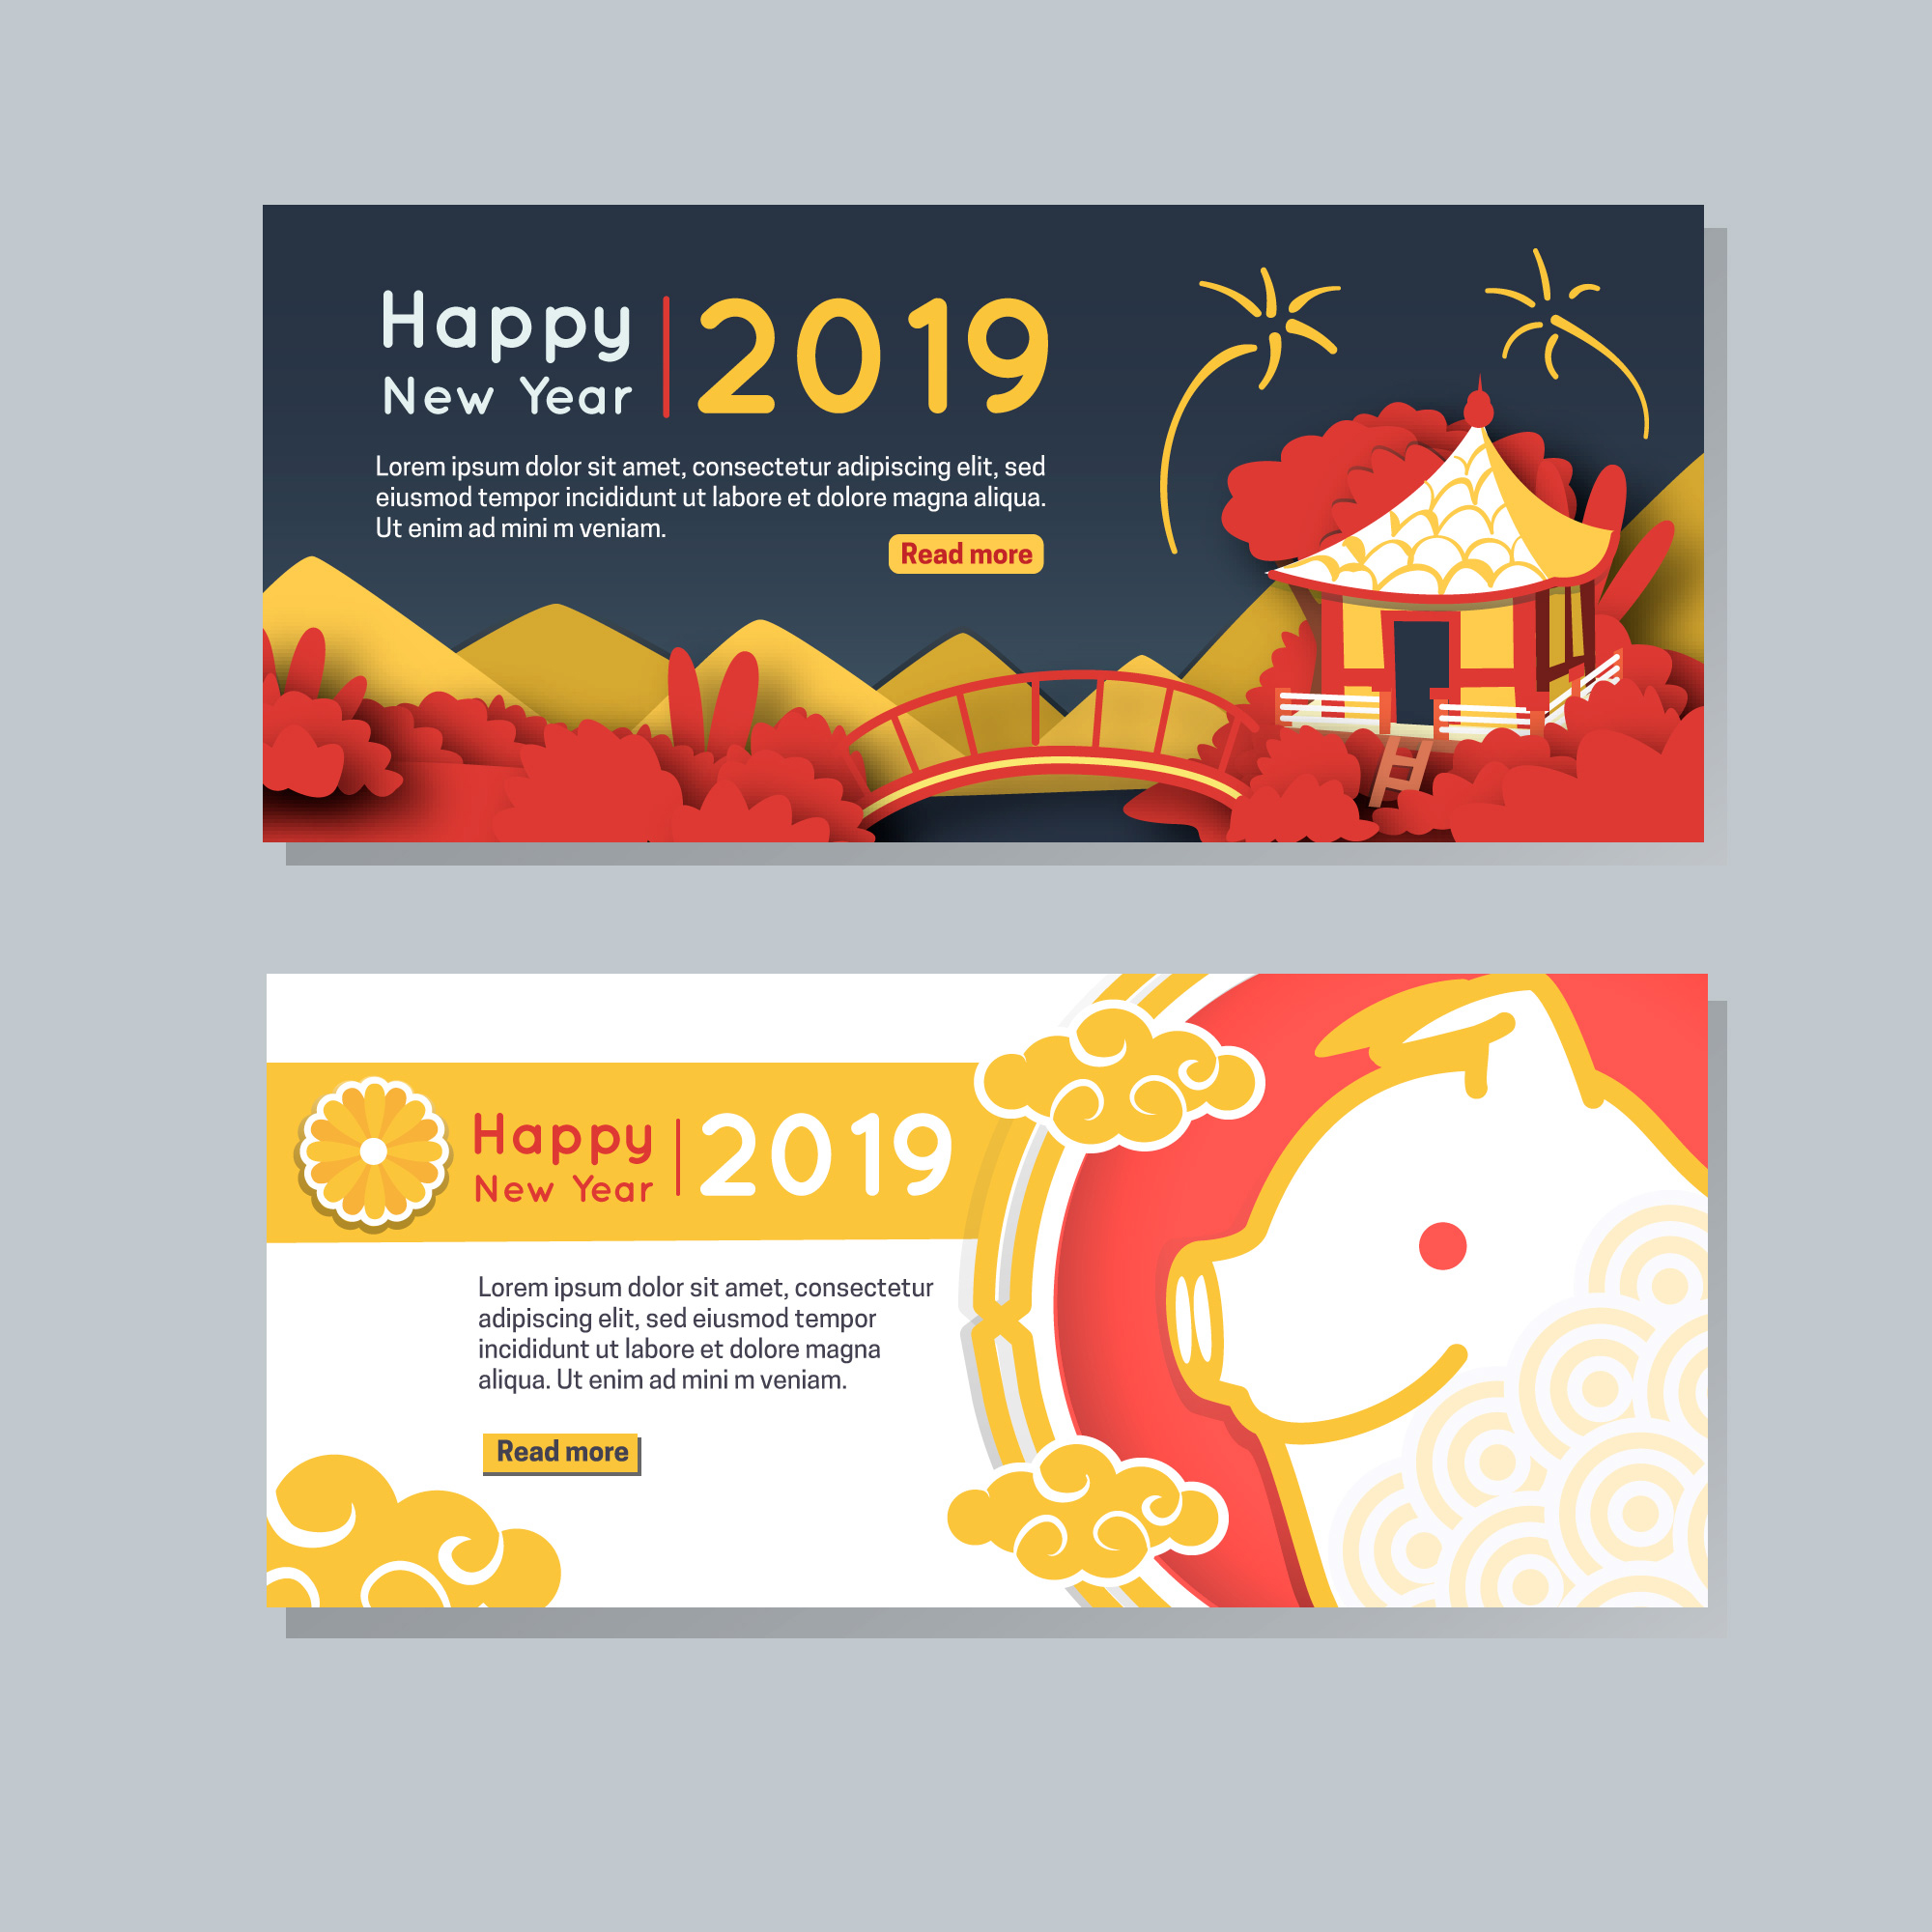 2019新年农历猪年贺卡矢量素材模板 2019 New Year Lunar Year Of The Pig Greeting Card Vector Material Template插图(4)